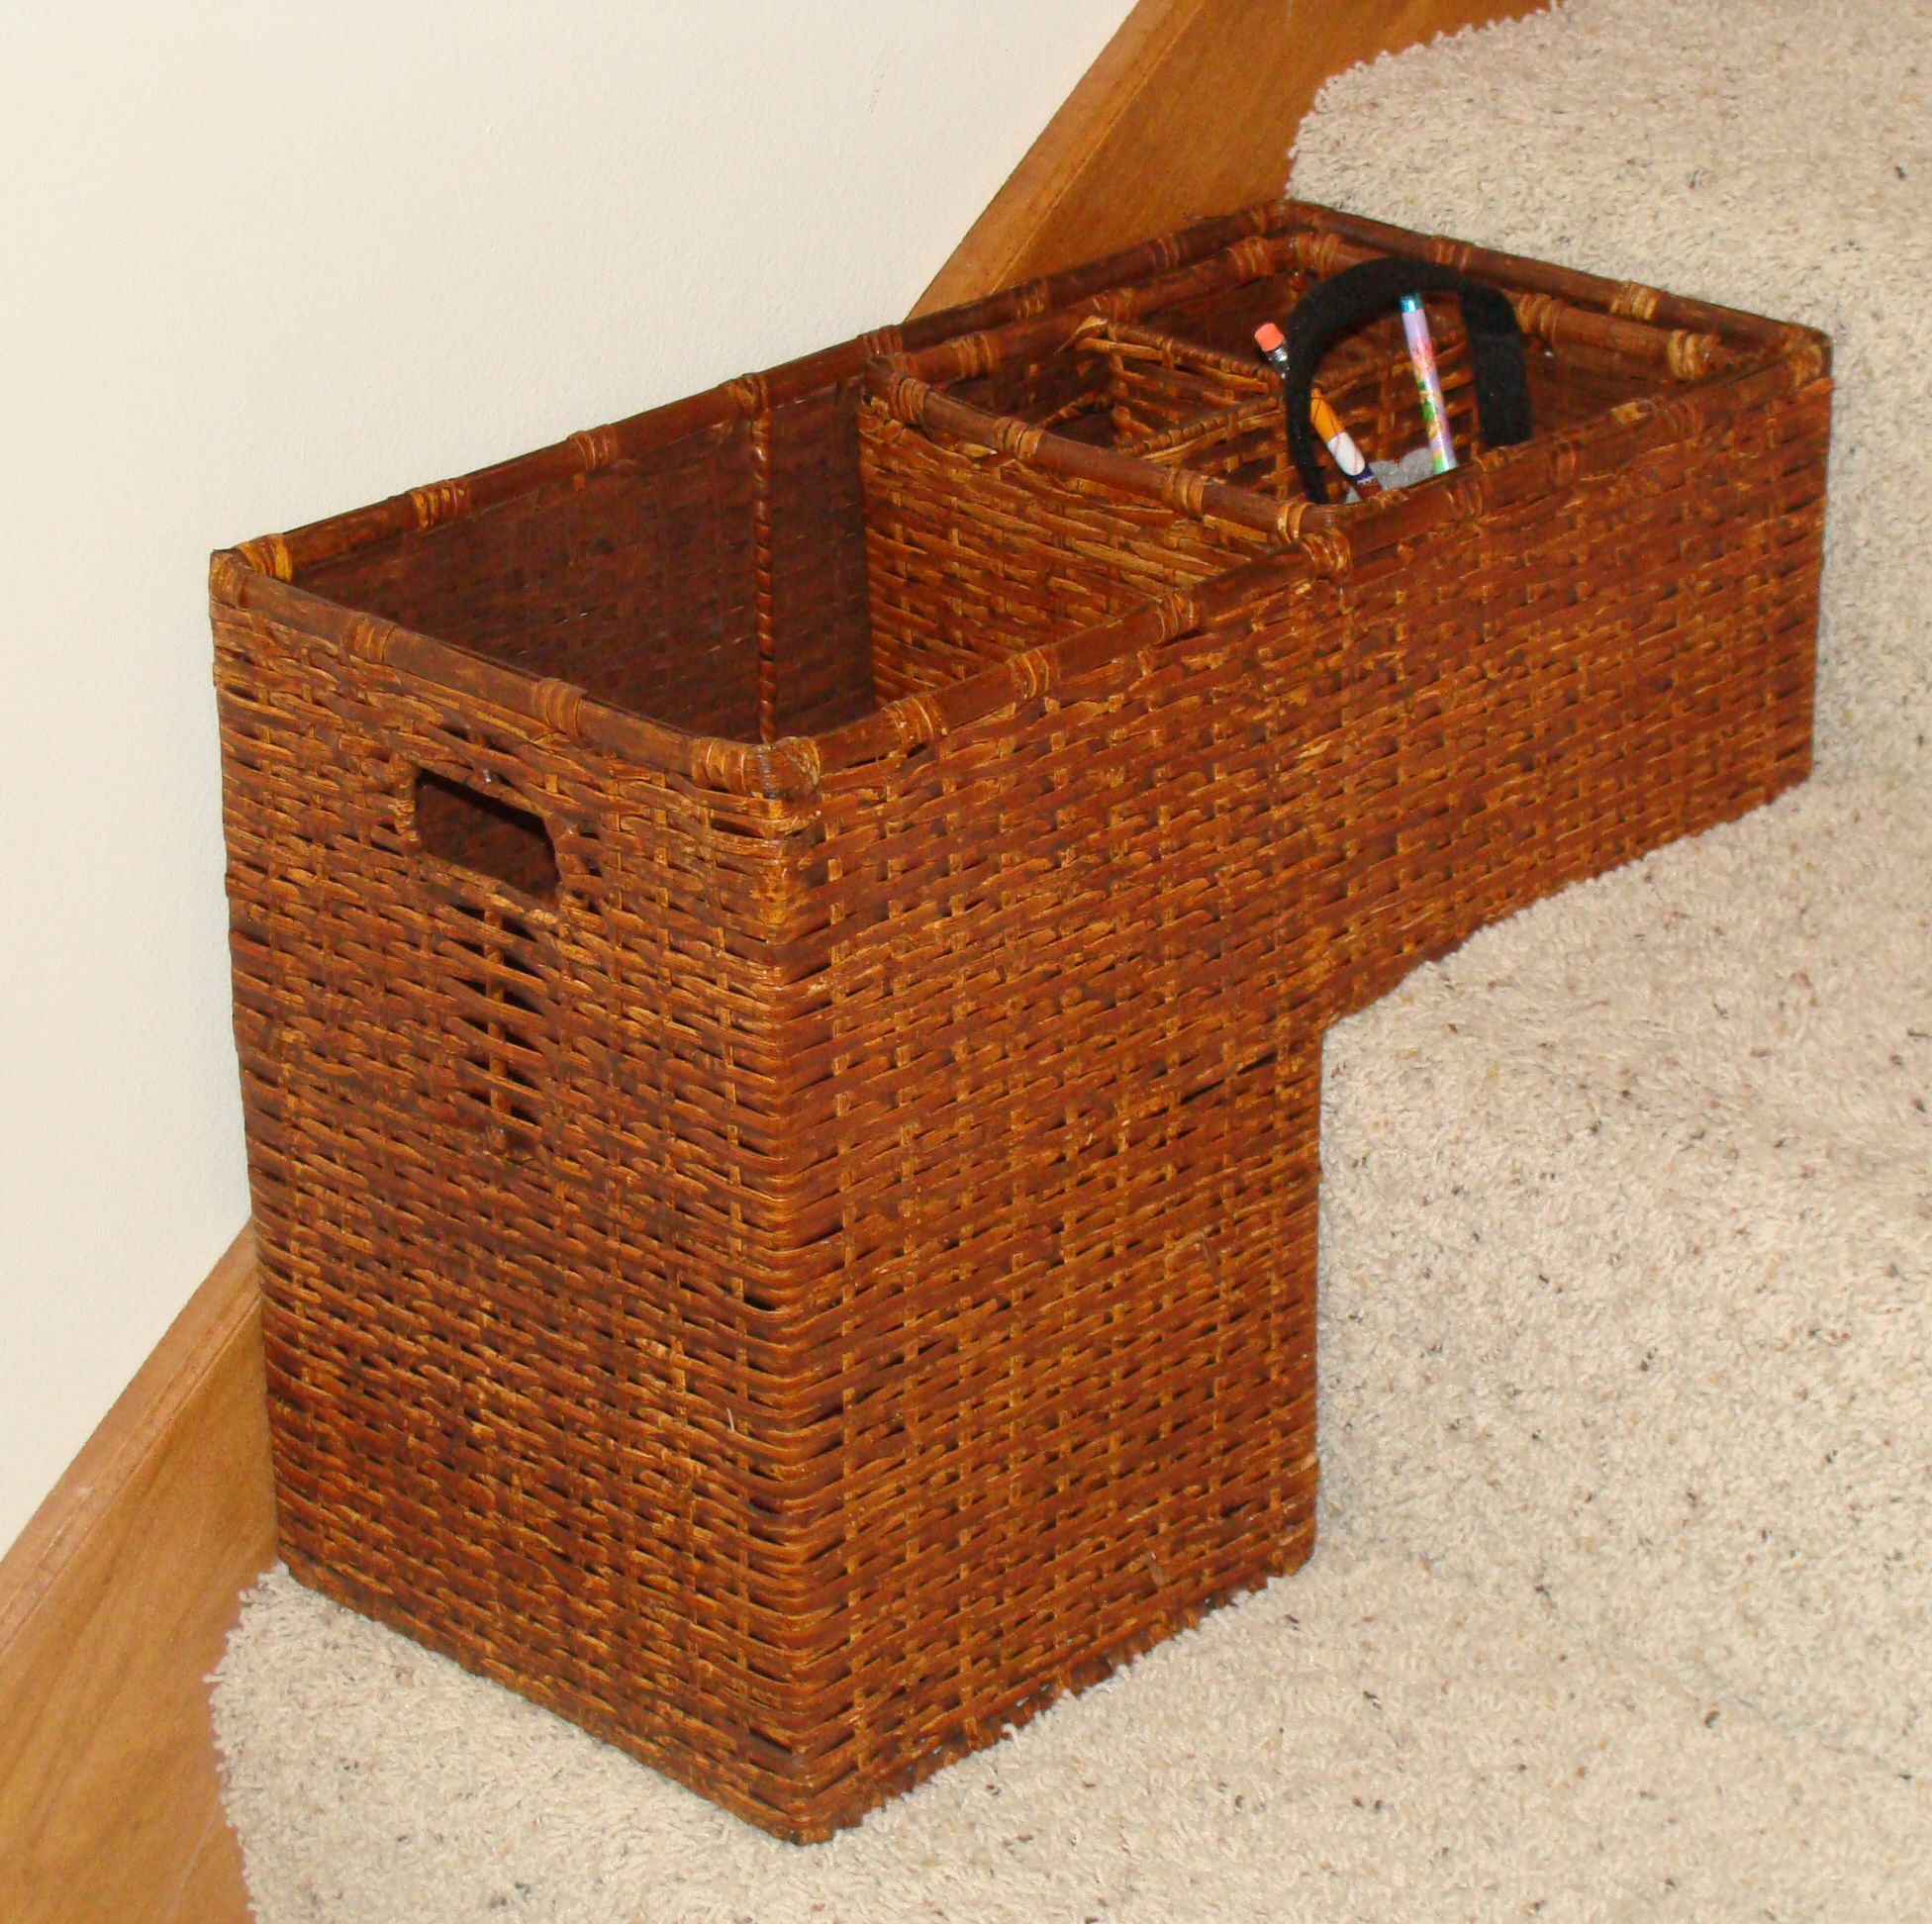 Gorgeous Furnished Rattan Basket For Stairs Design With Slots In The  Storage On Coated Steps In